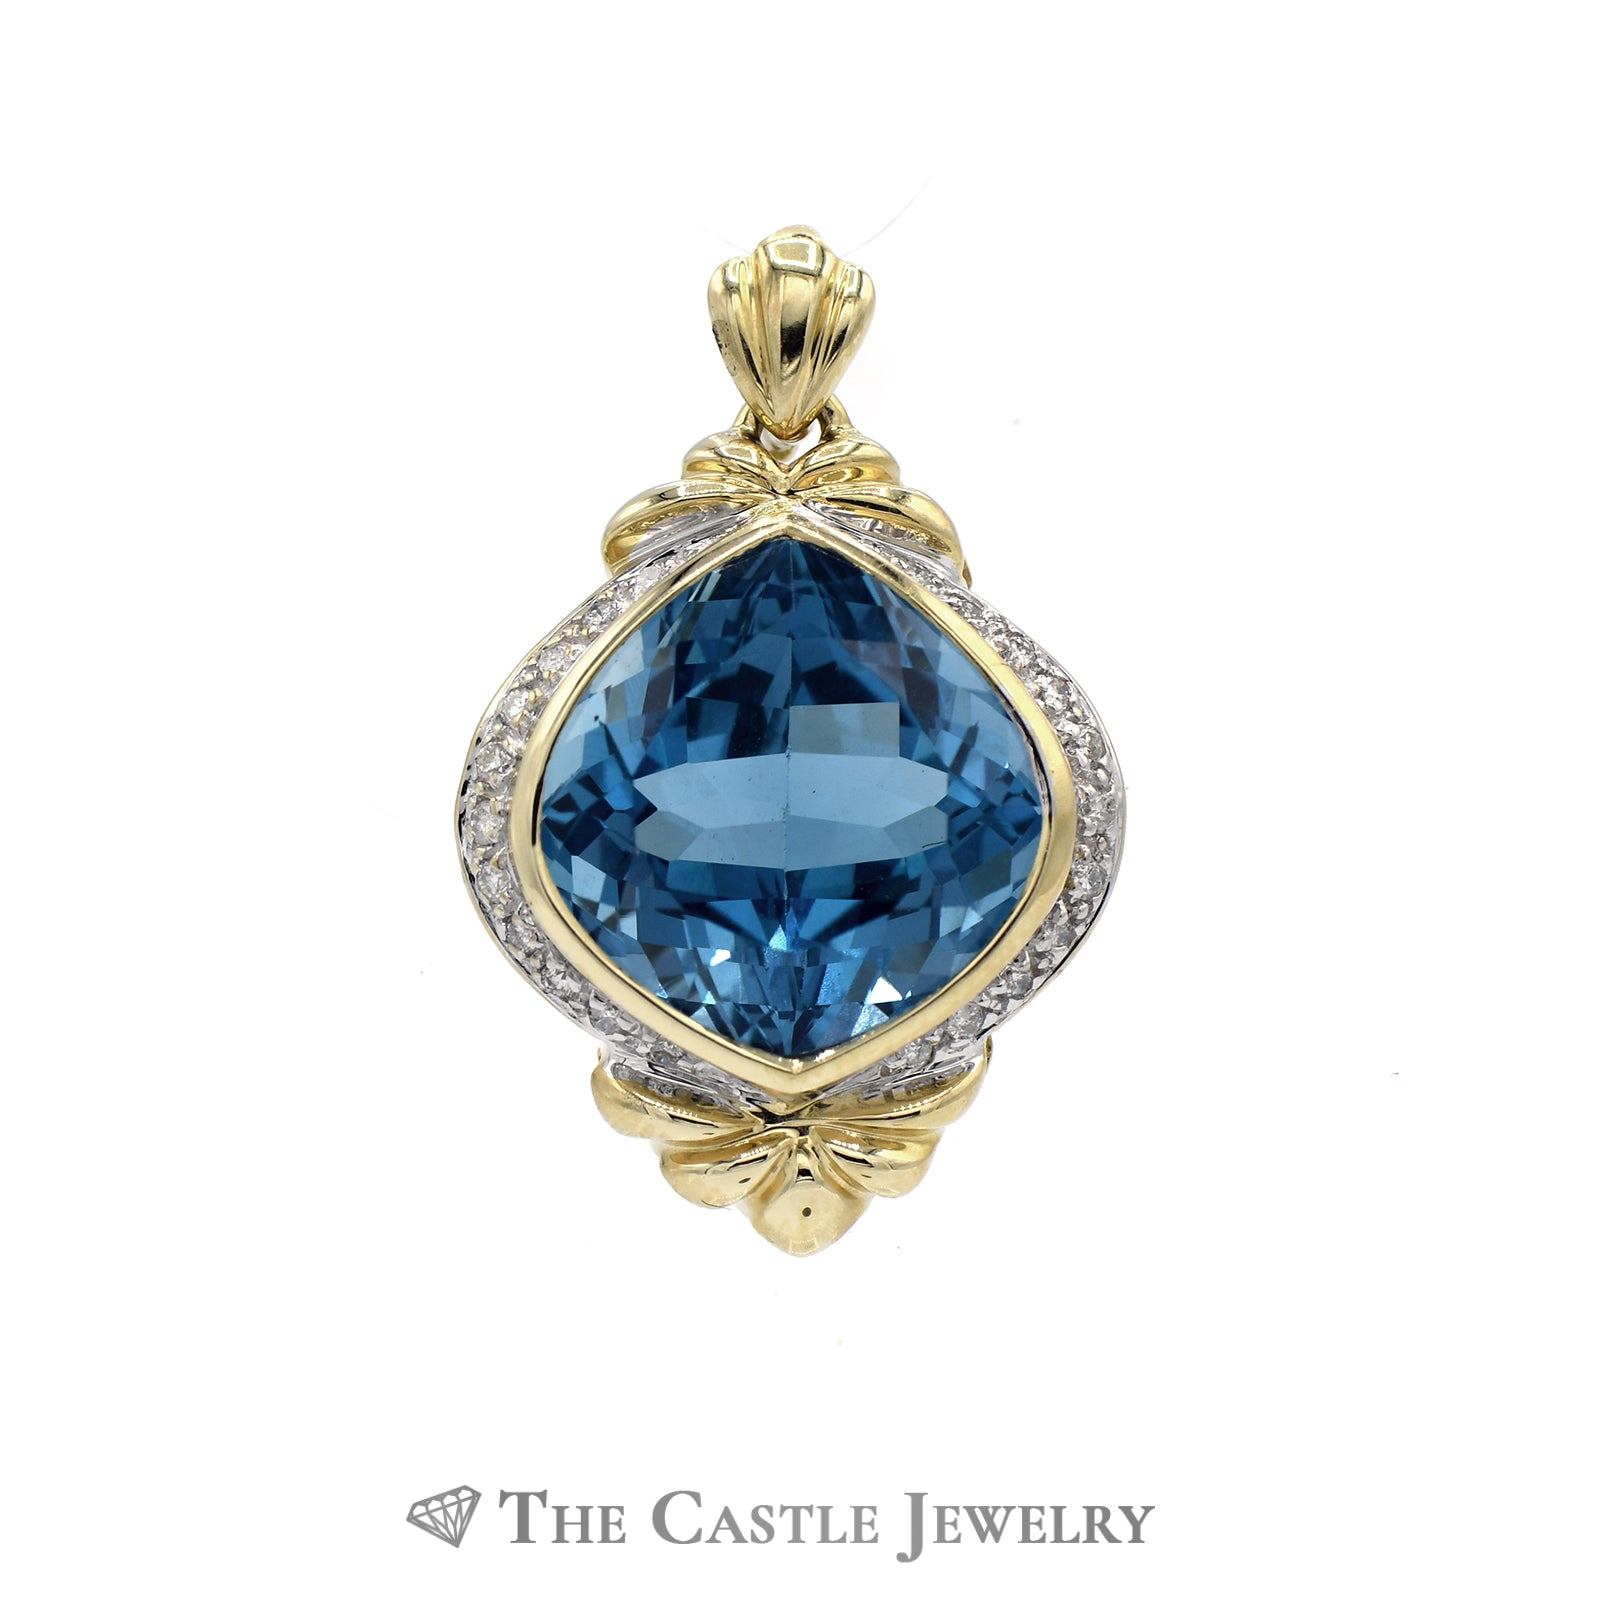 Fancy Cut Topaz and Diamond Pendant in 14KT Yellow Gold